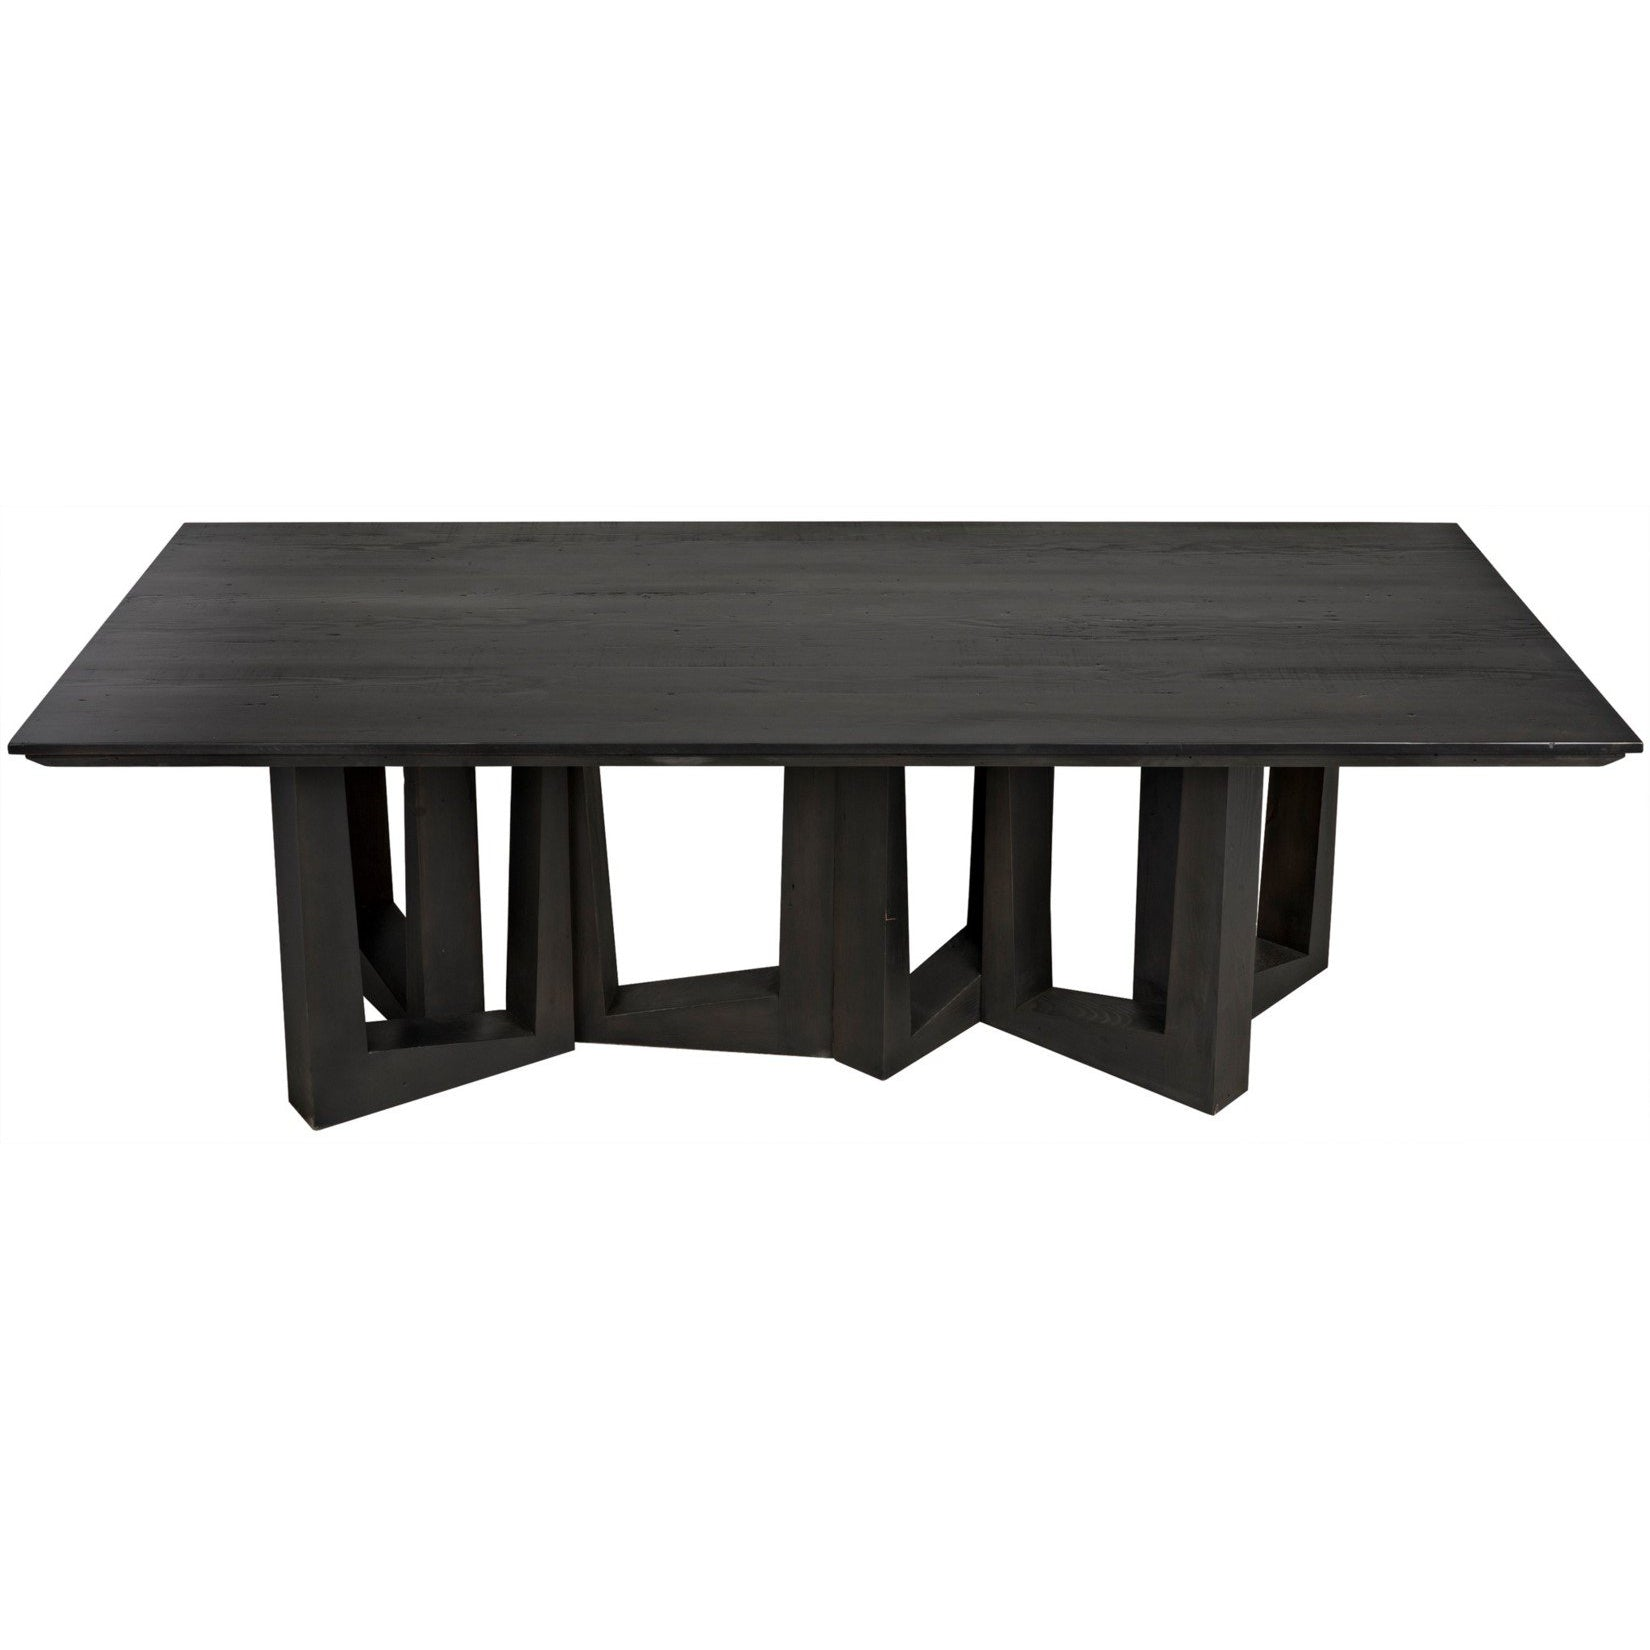 CFC Furniture Carmel Dining Table